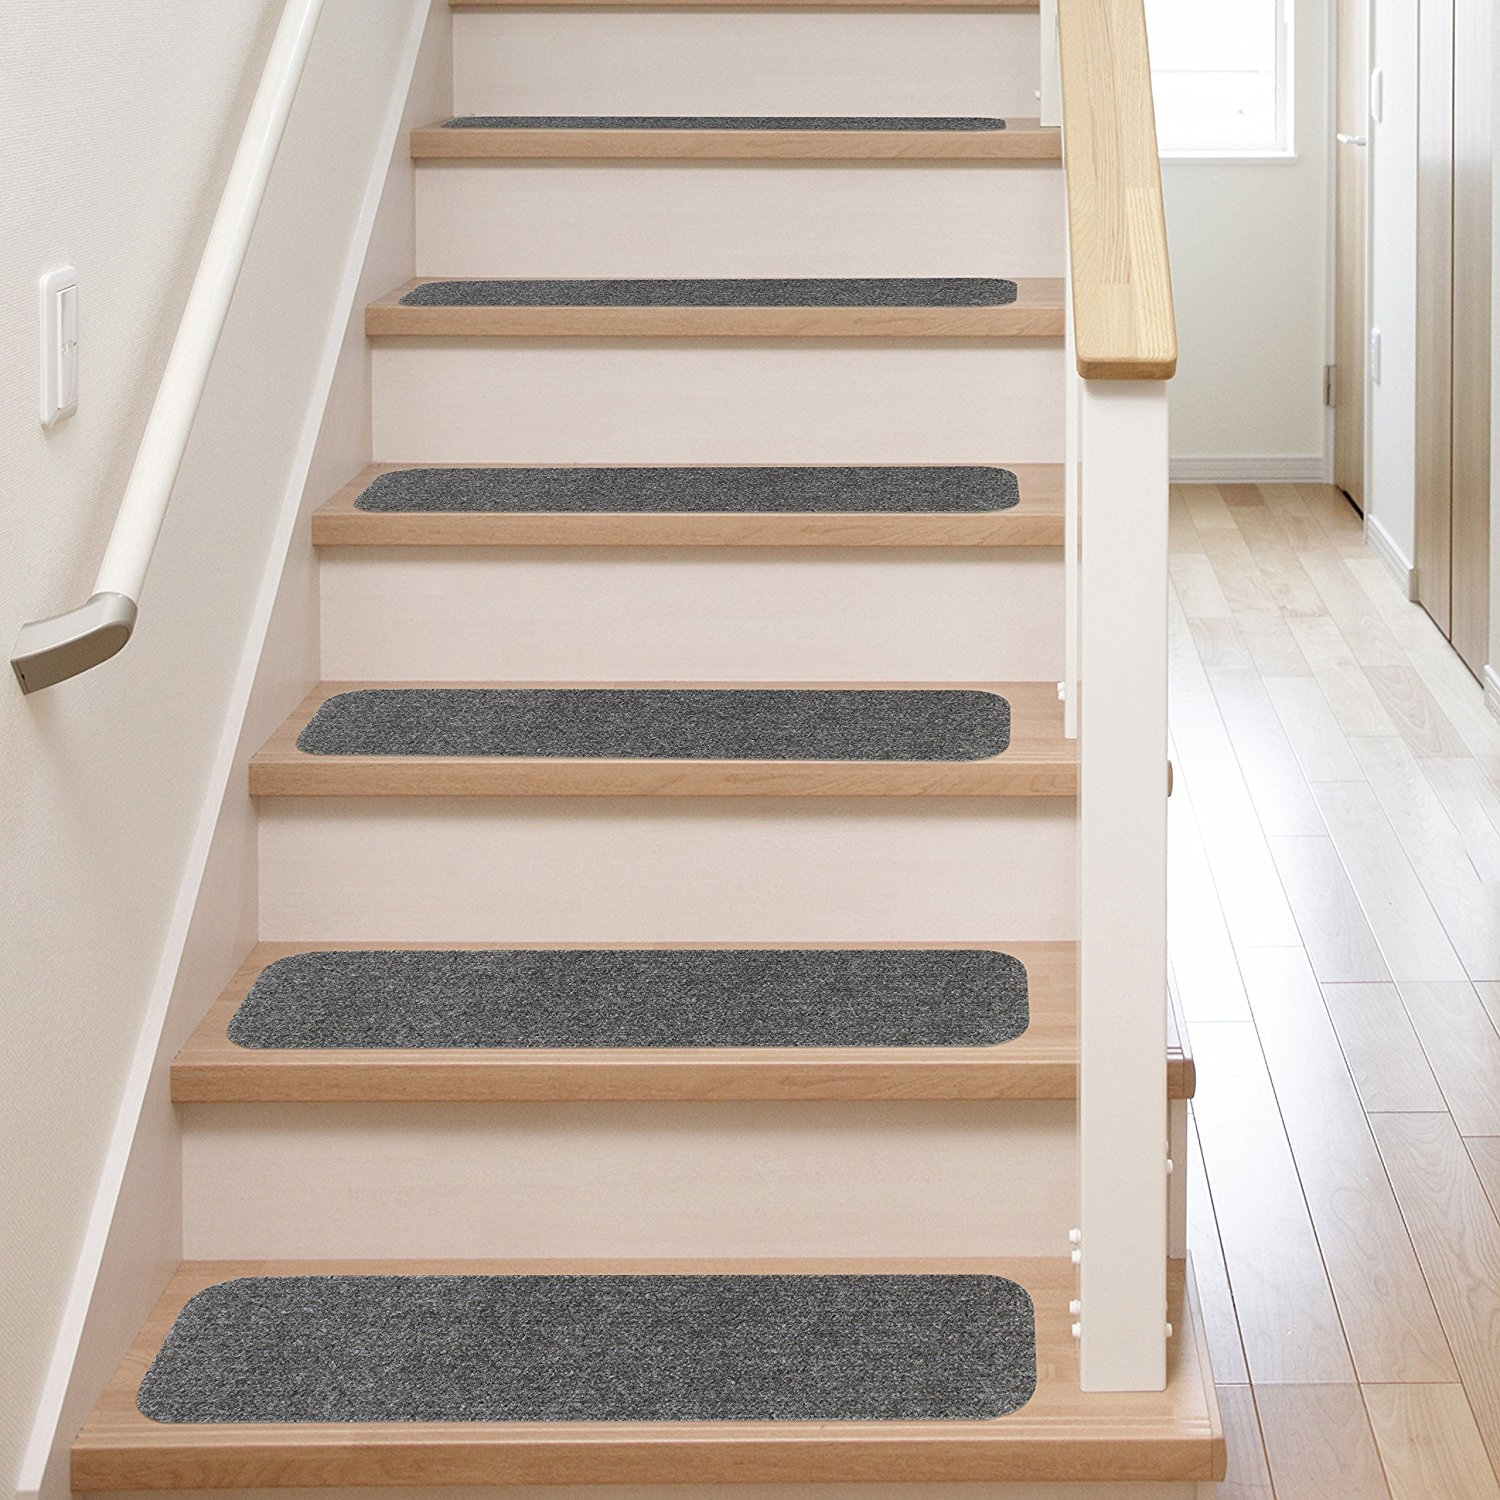 Popular Photo of Rubber Backed Stair Tread Rugs